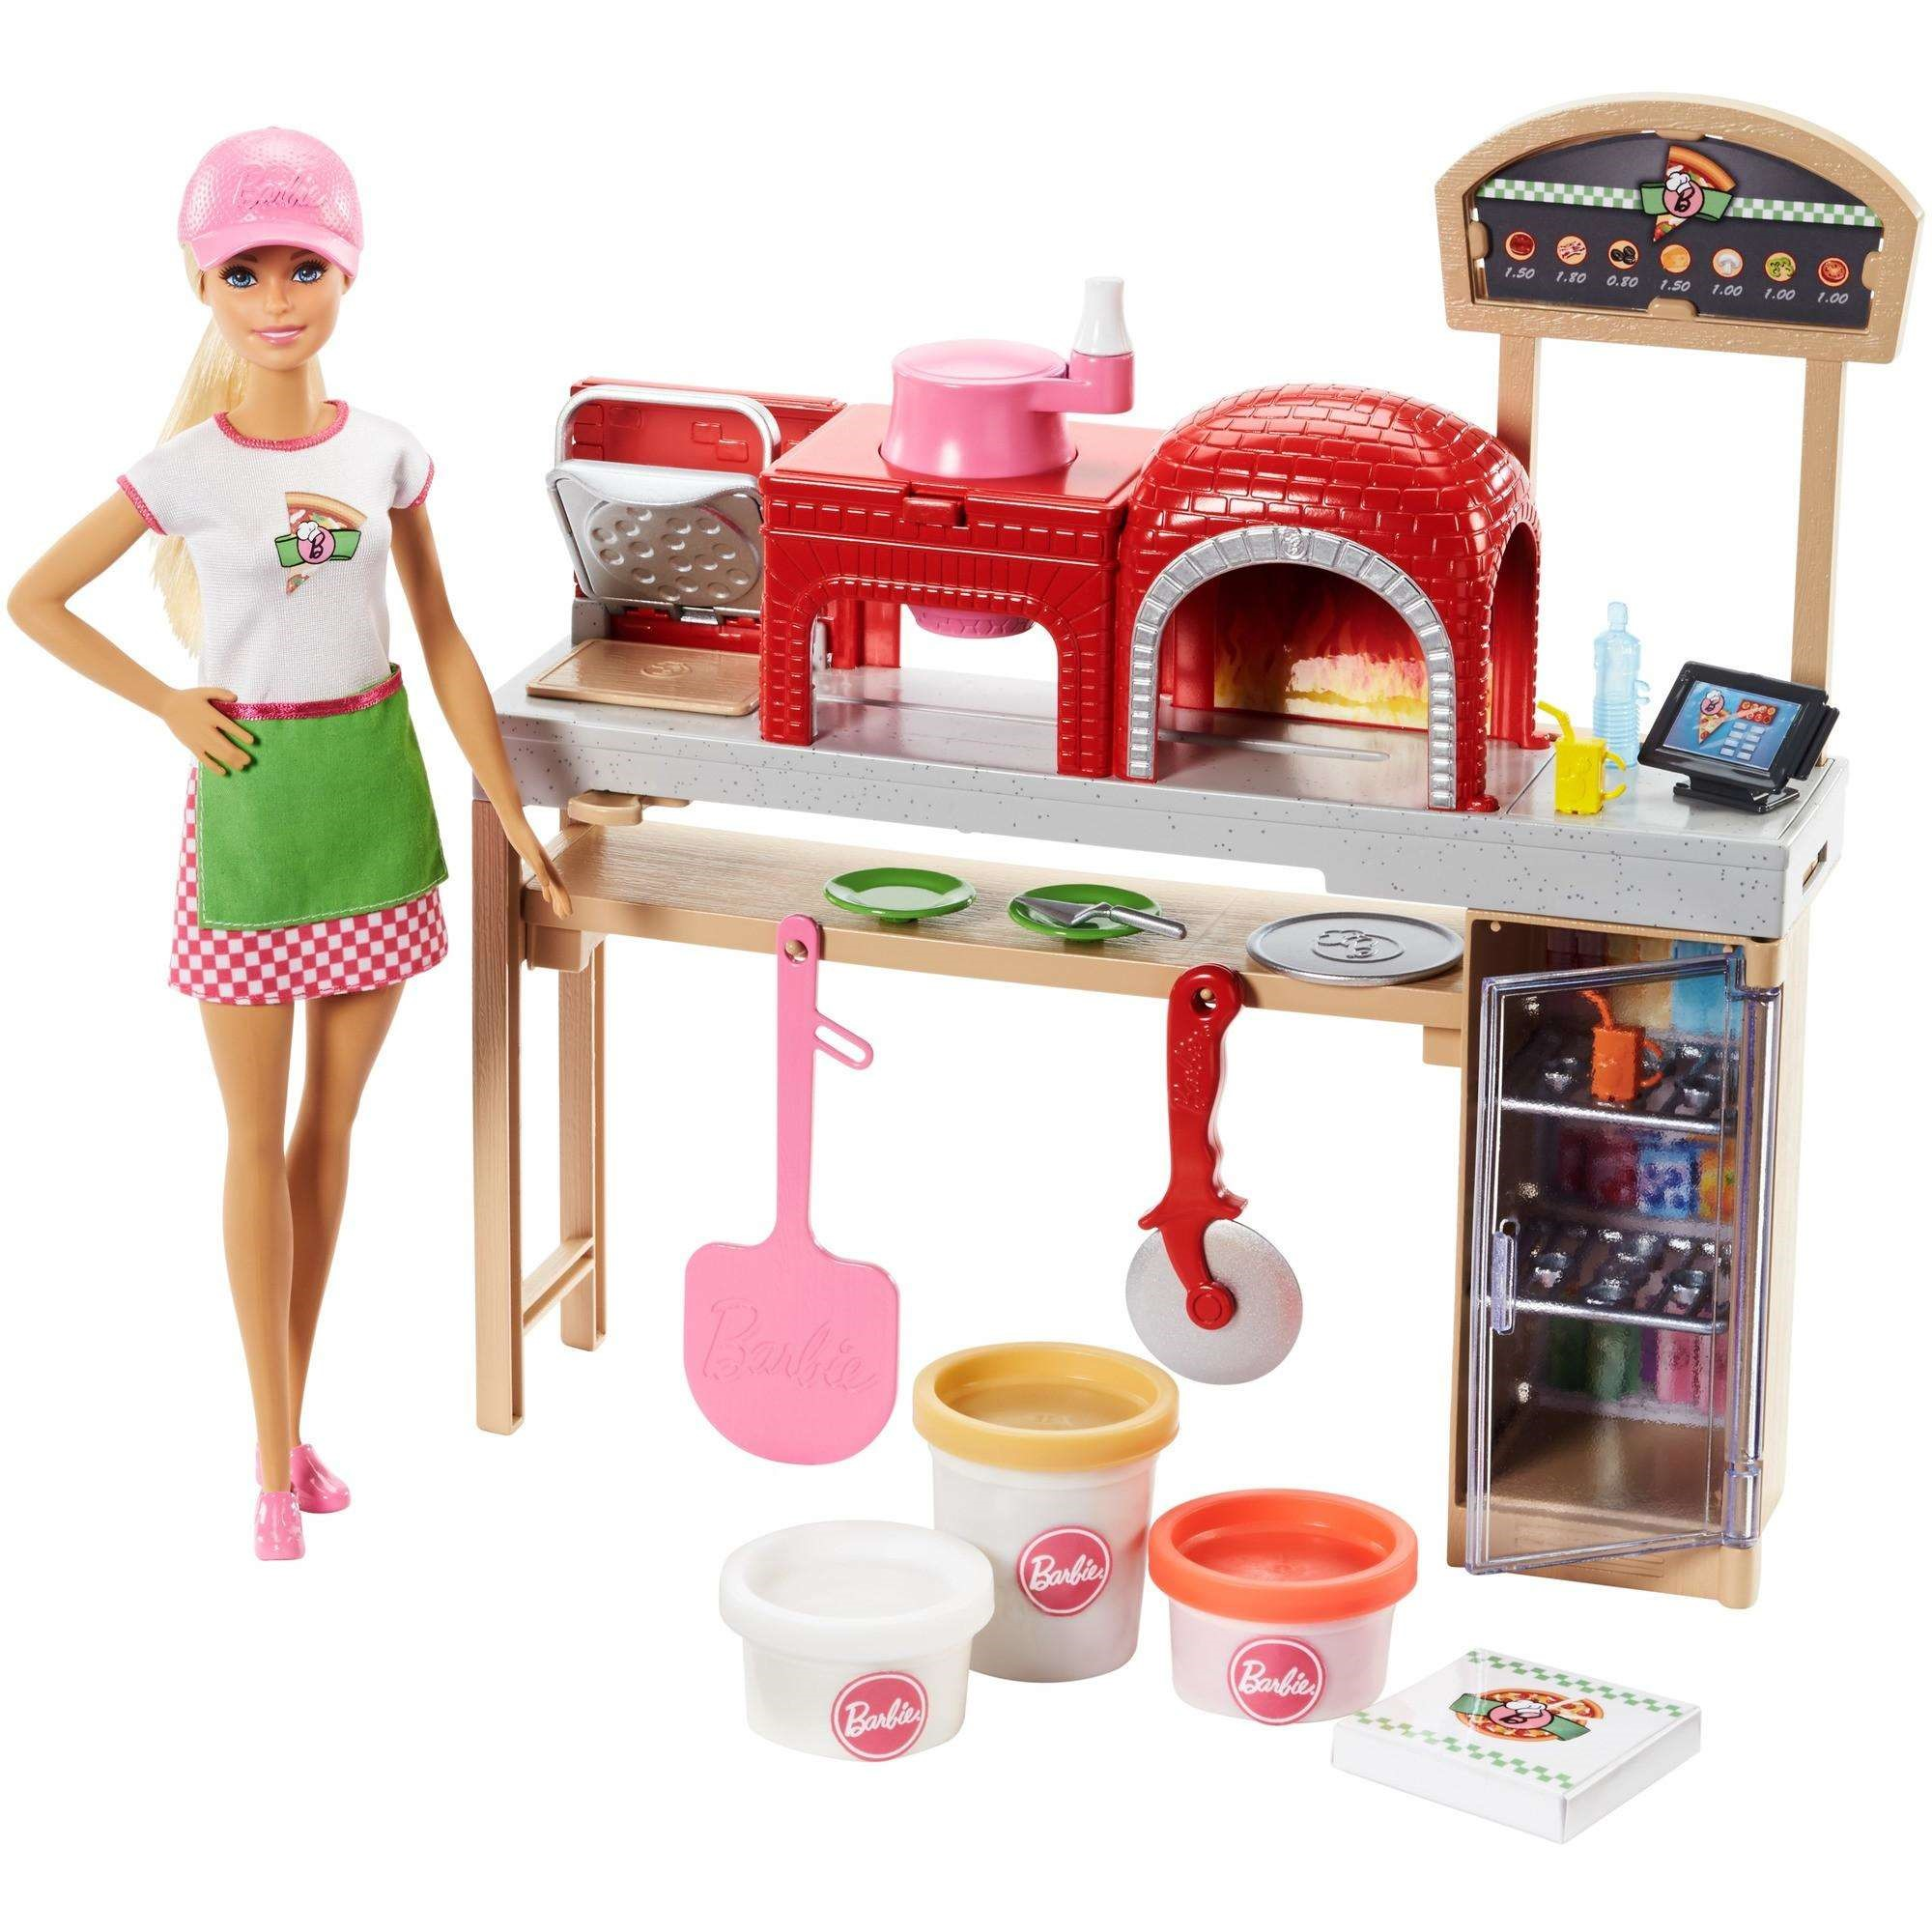 Barbie Cooking Baking Pizza Making Chef Doll Play Set Walmart Com